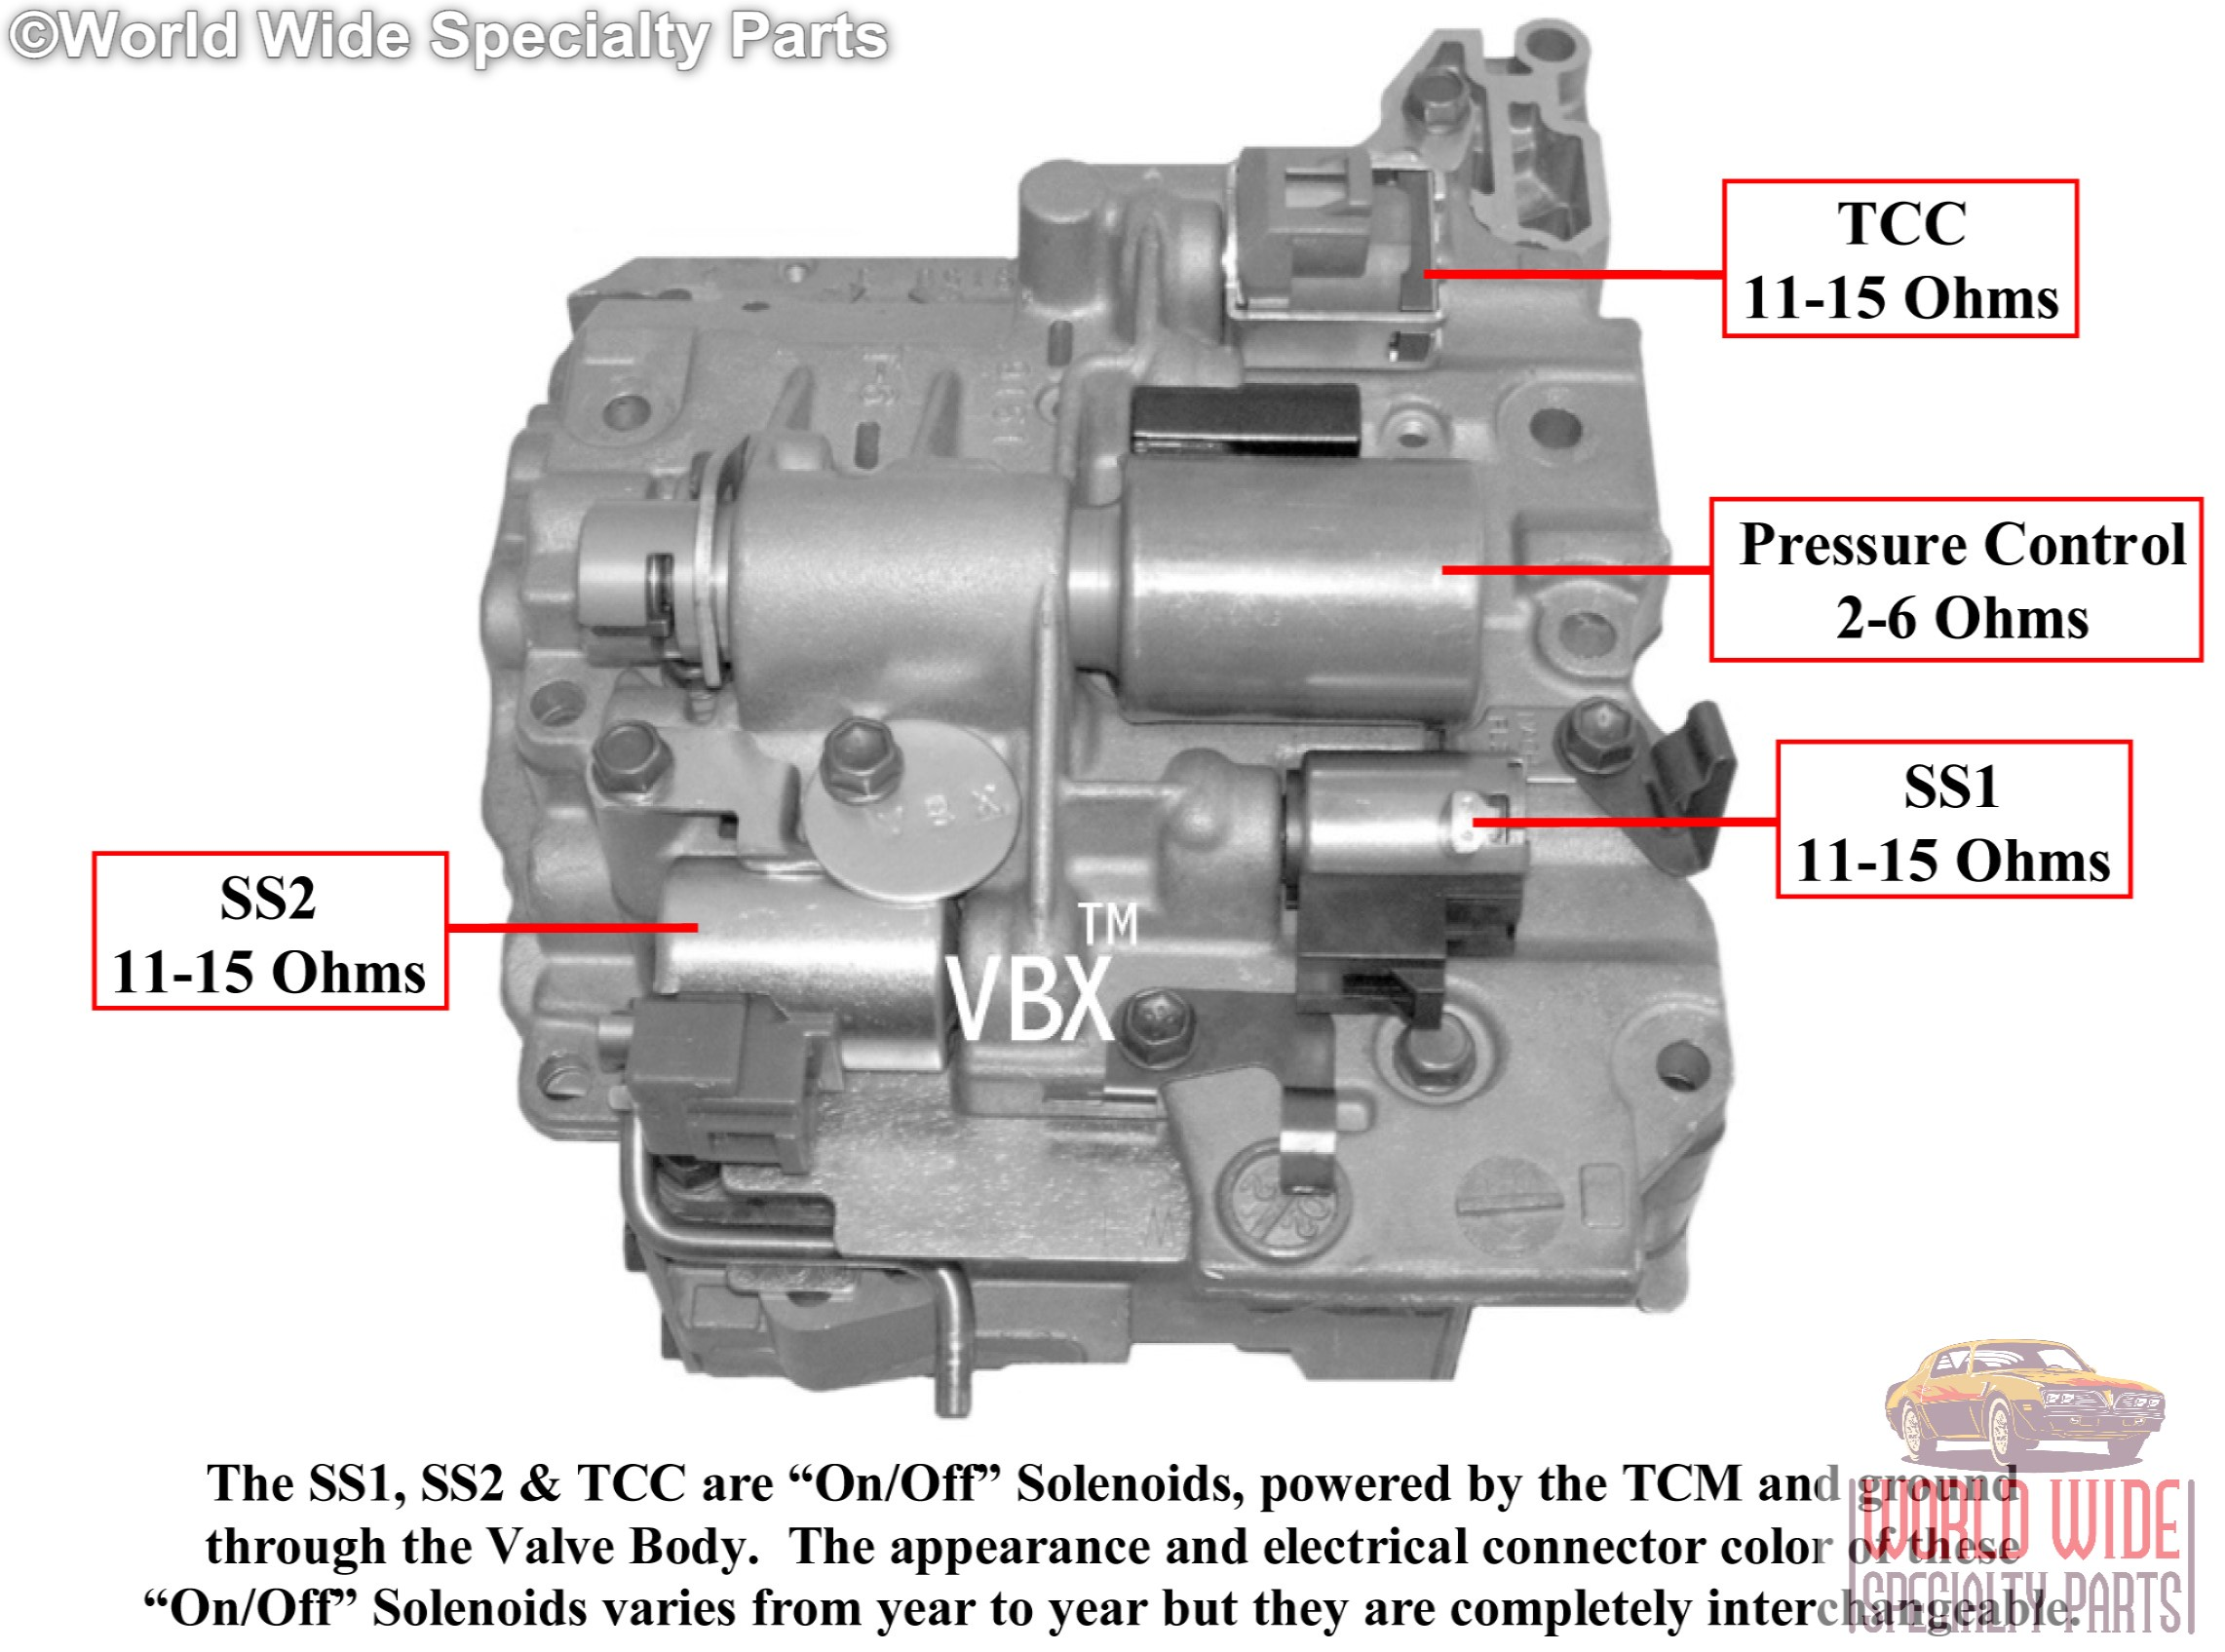 [SCHEMATICS_48IU]  AW50-40LE, AW50-42LE Valve Body with 4 Solenoids - World Wide Specialty  Parts | A606 42le Transmission Wiring Diagram |  | World Wide Specialty Parts